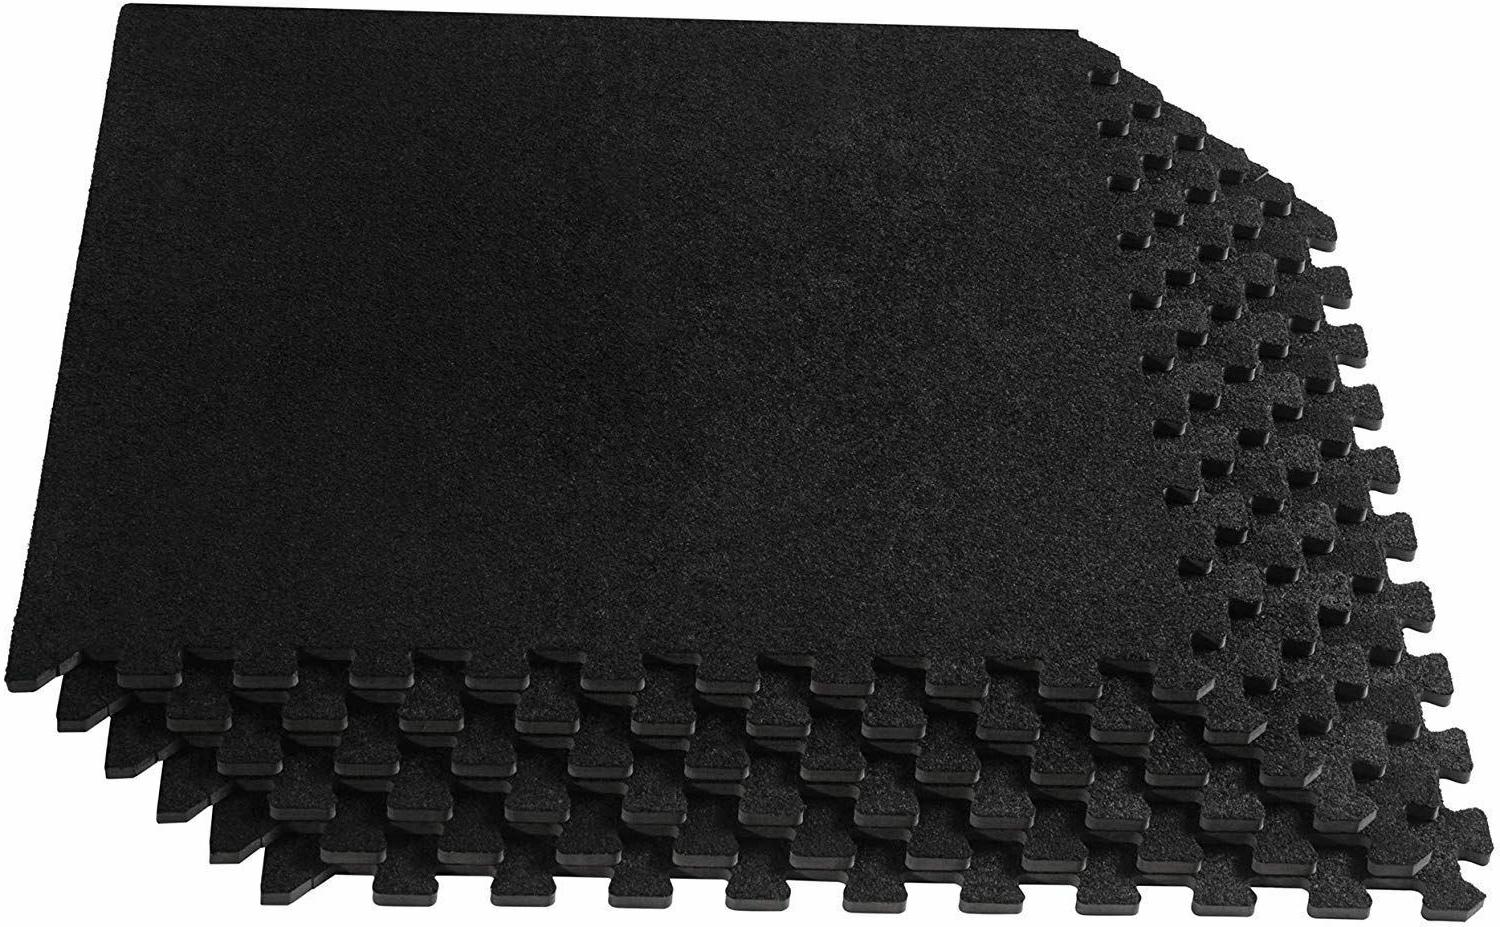 EXERCISE FLOOR MAT 24 x 24 Puzzle Rug Gym Fitness Workout Eq